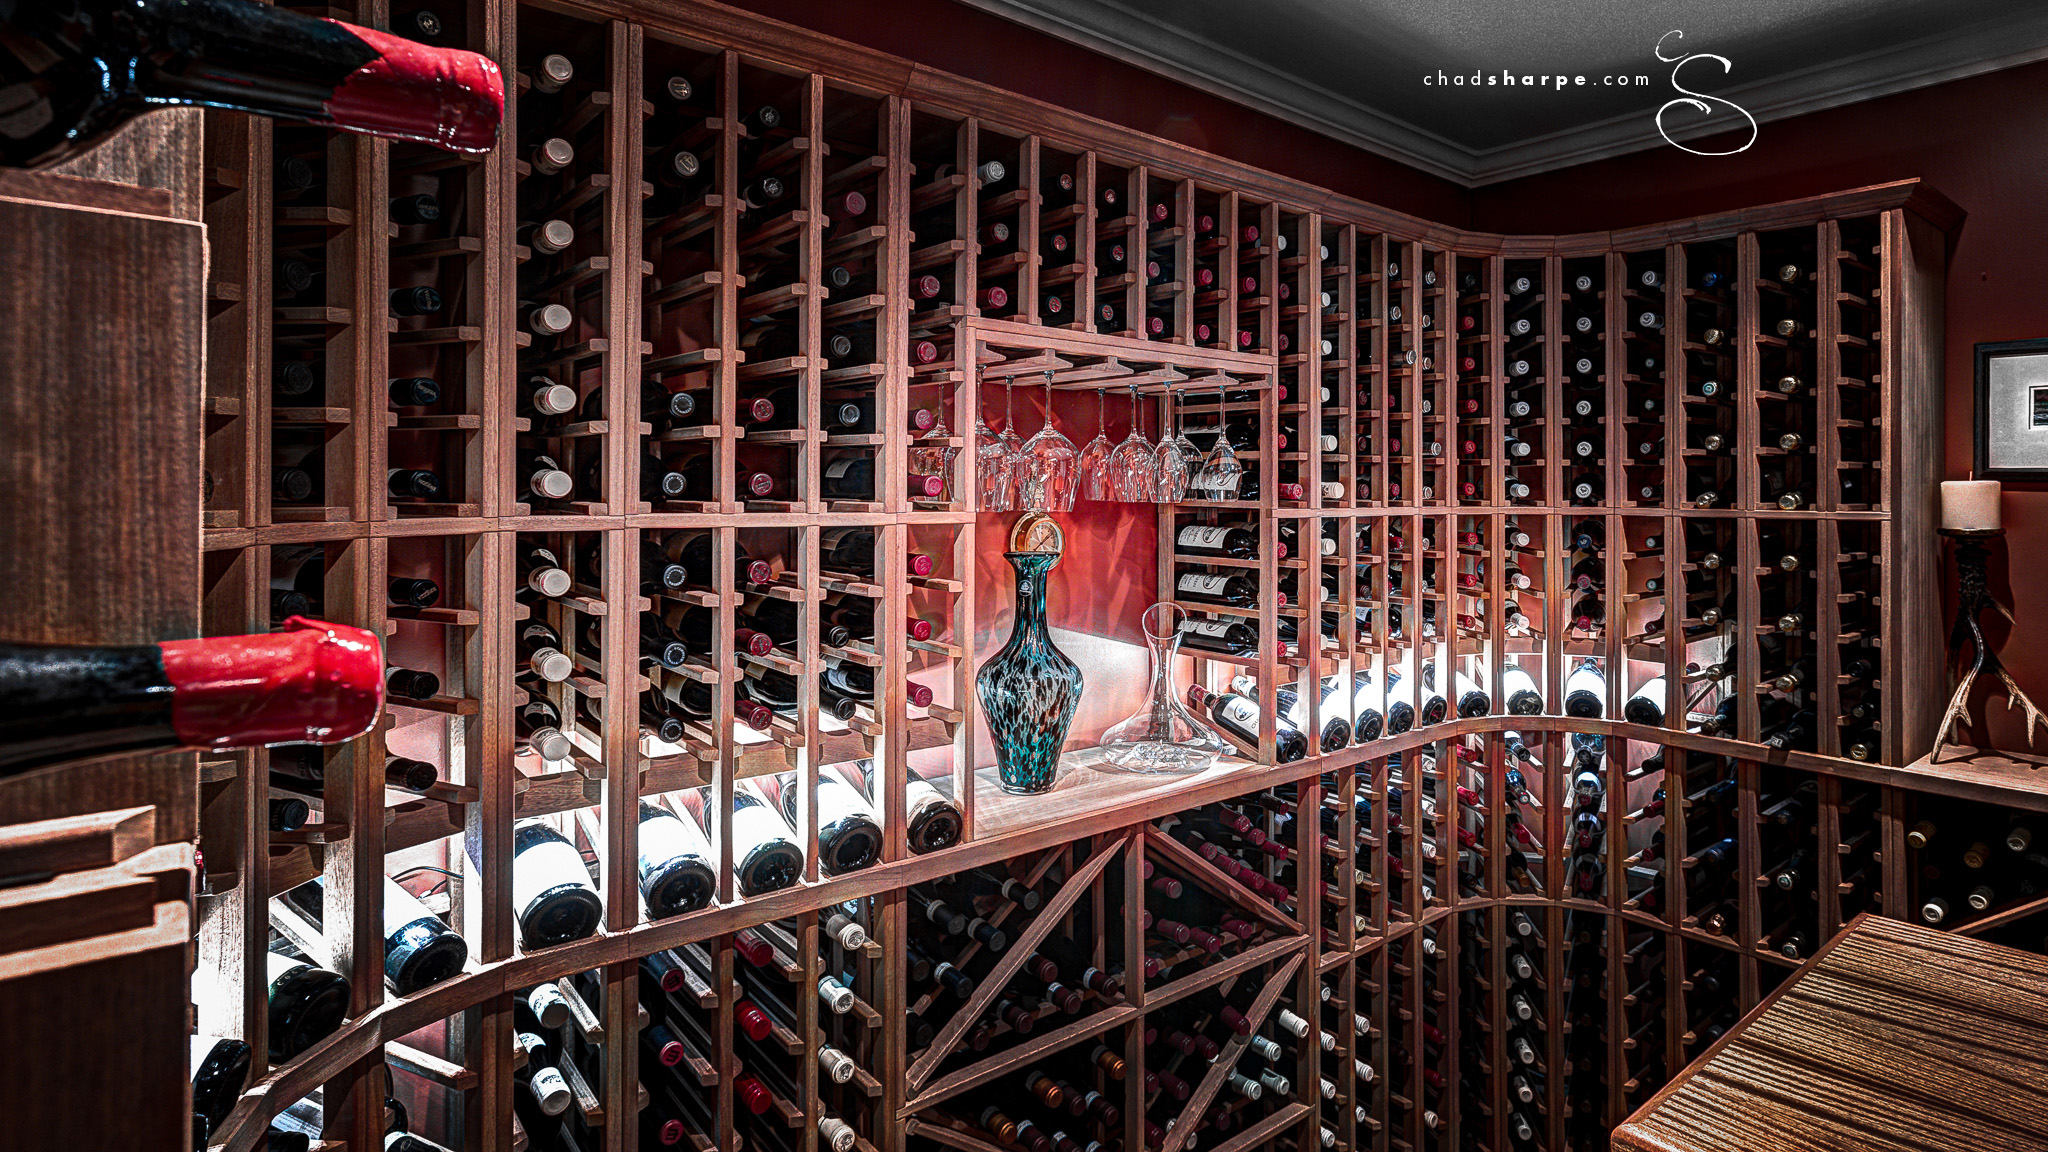 Interior design shoot for Spaces NL. & RED WINE CELLAR | chad sharpe